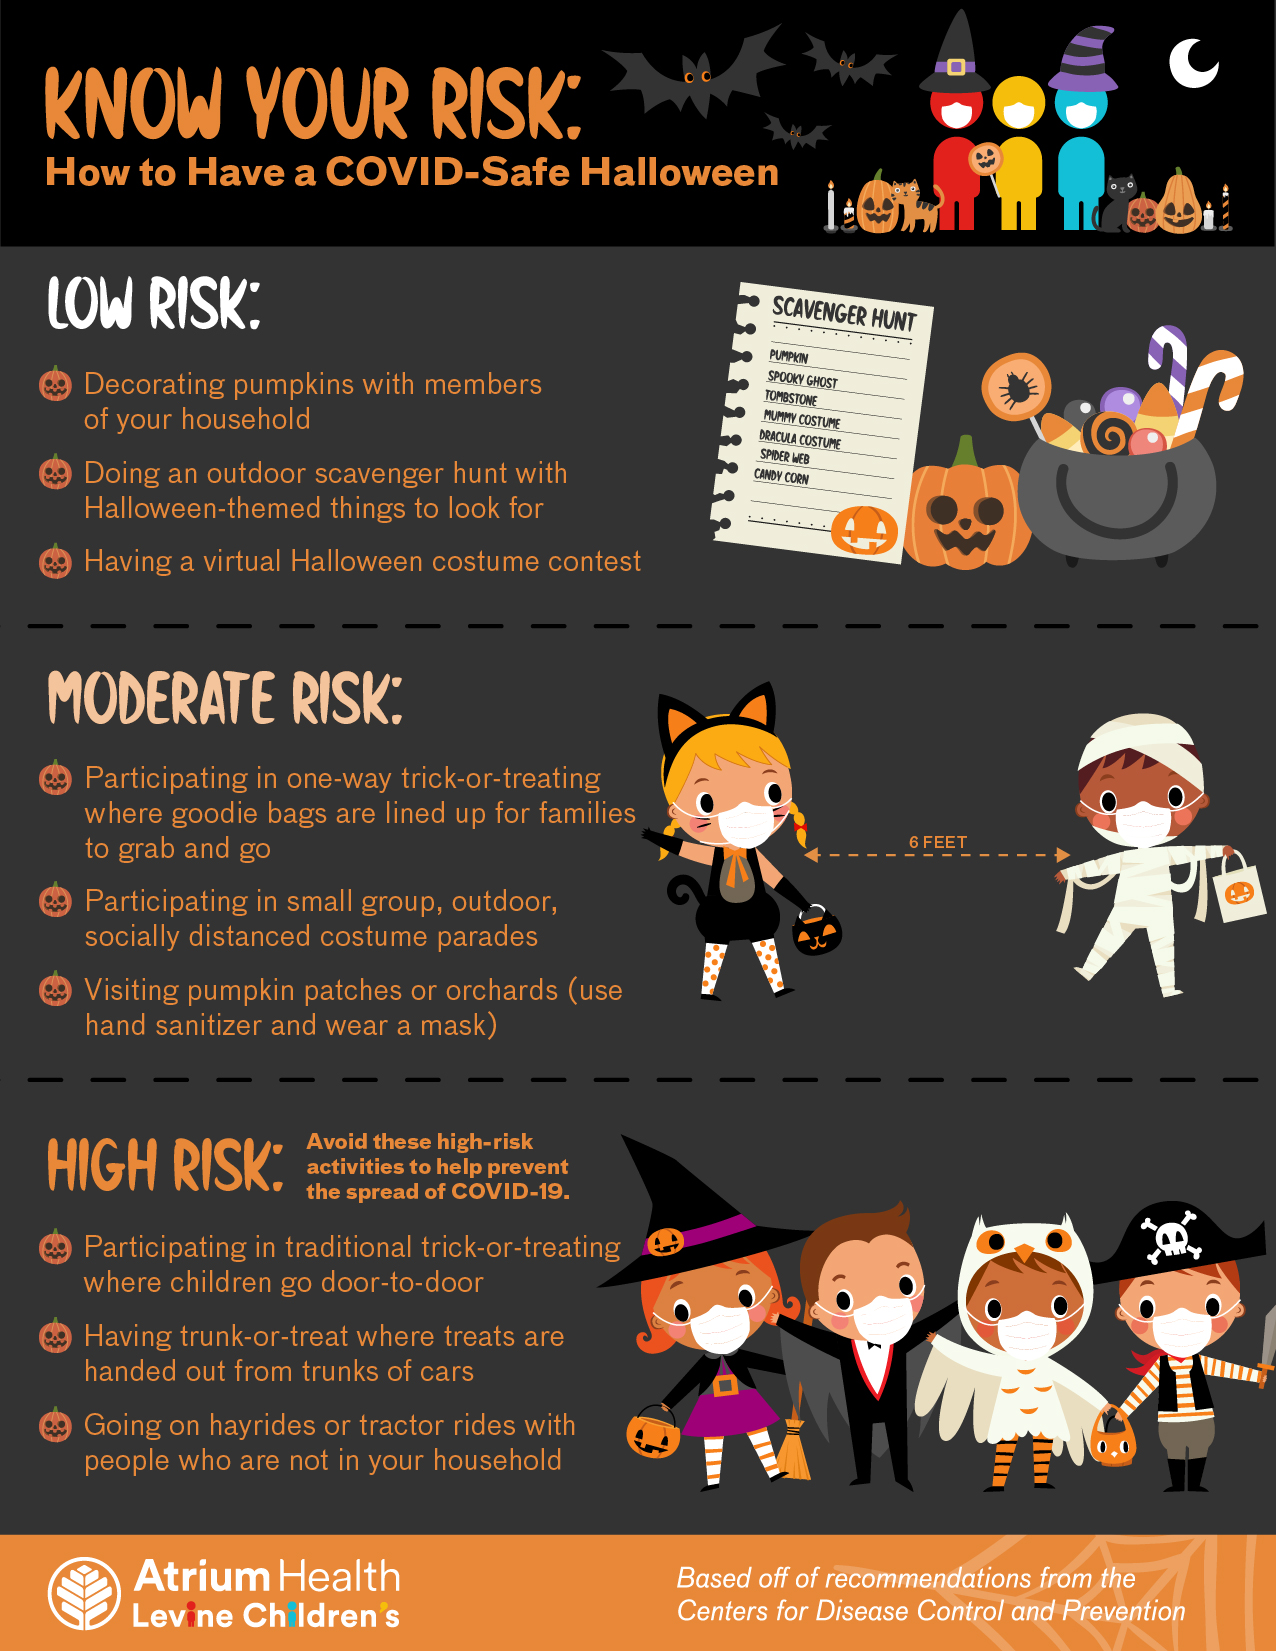 Know your risk for how to have a safe Halloween this year